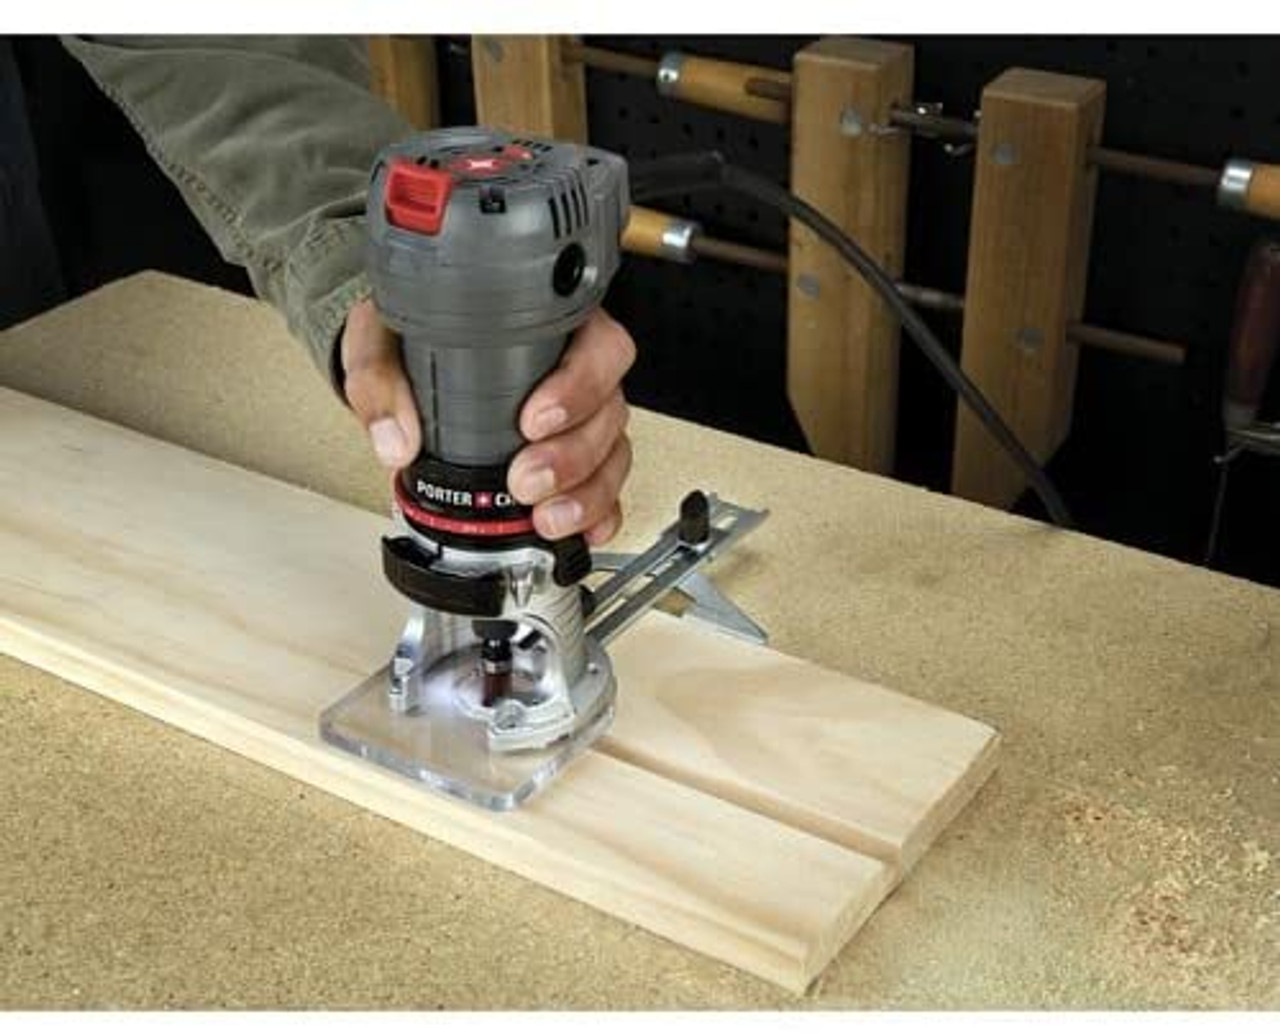 PORTER-CABLE PCE6430 4.5-Amp Single Speed 1/4-Inch Laminate Trimmer, Router